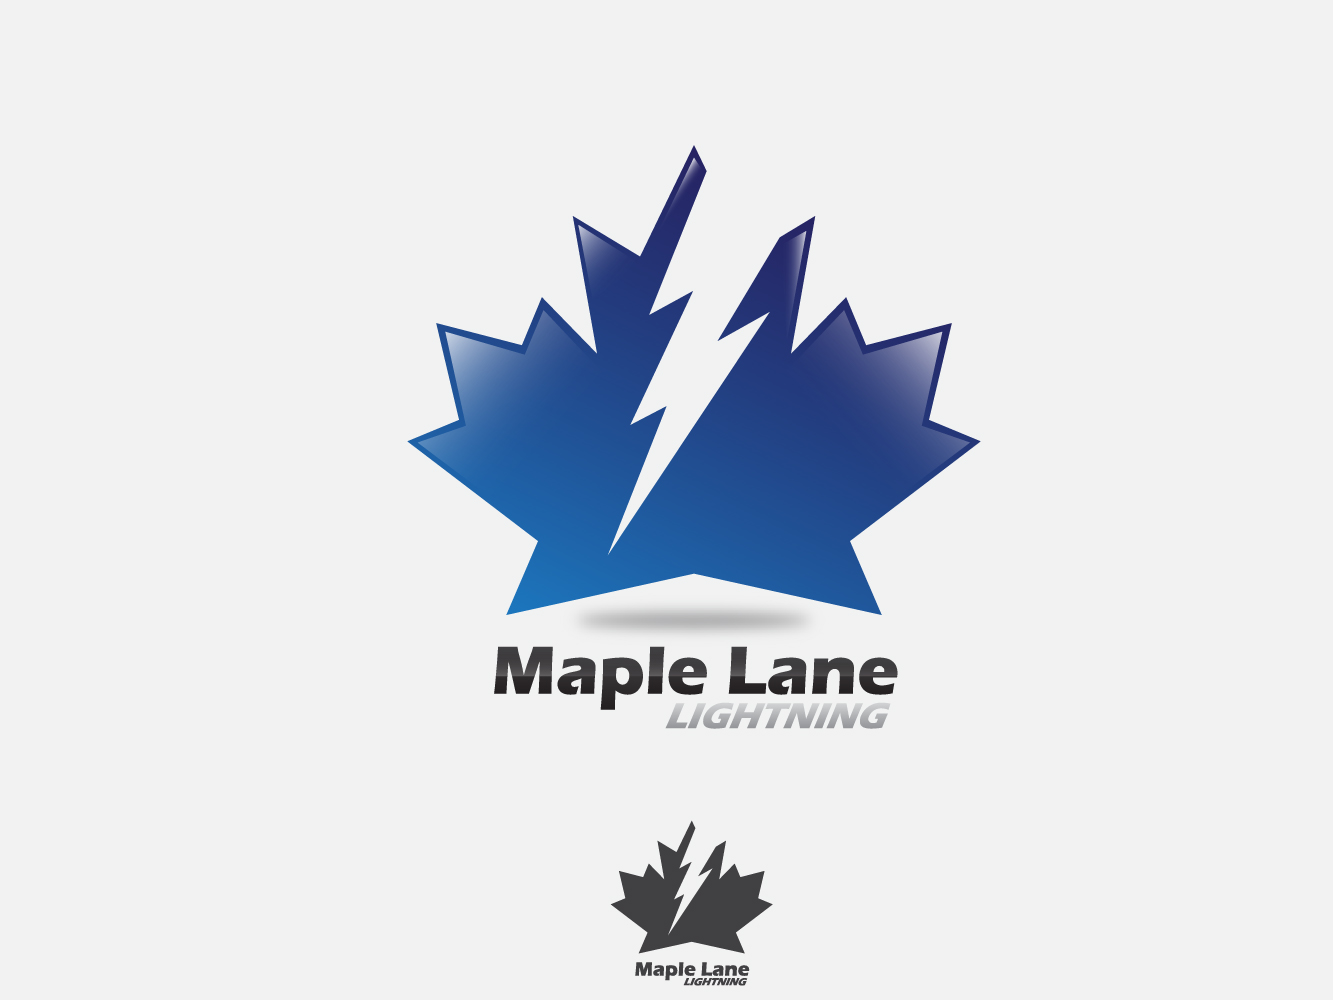 Logo Design by Jerameel Cabautan - Entry No. 58 in the Logo Design Contest Maple Lane Logo Design.